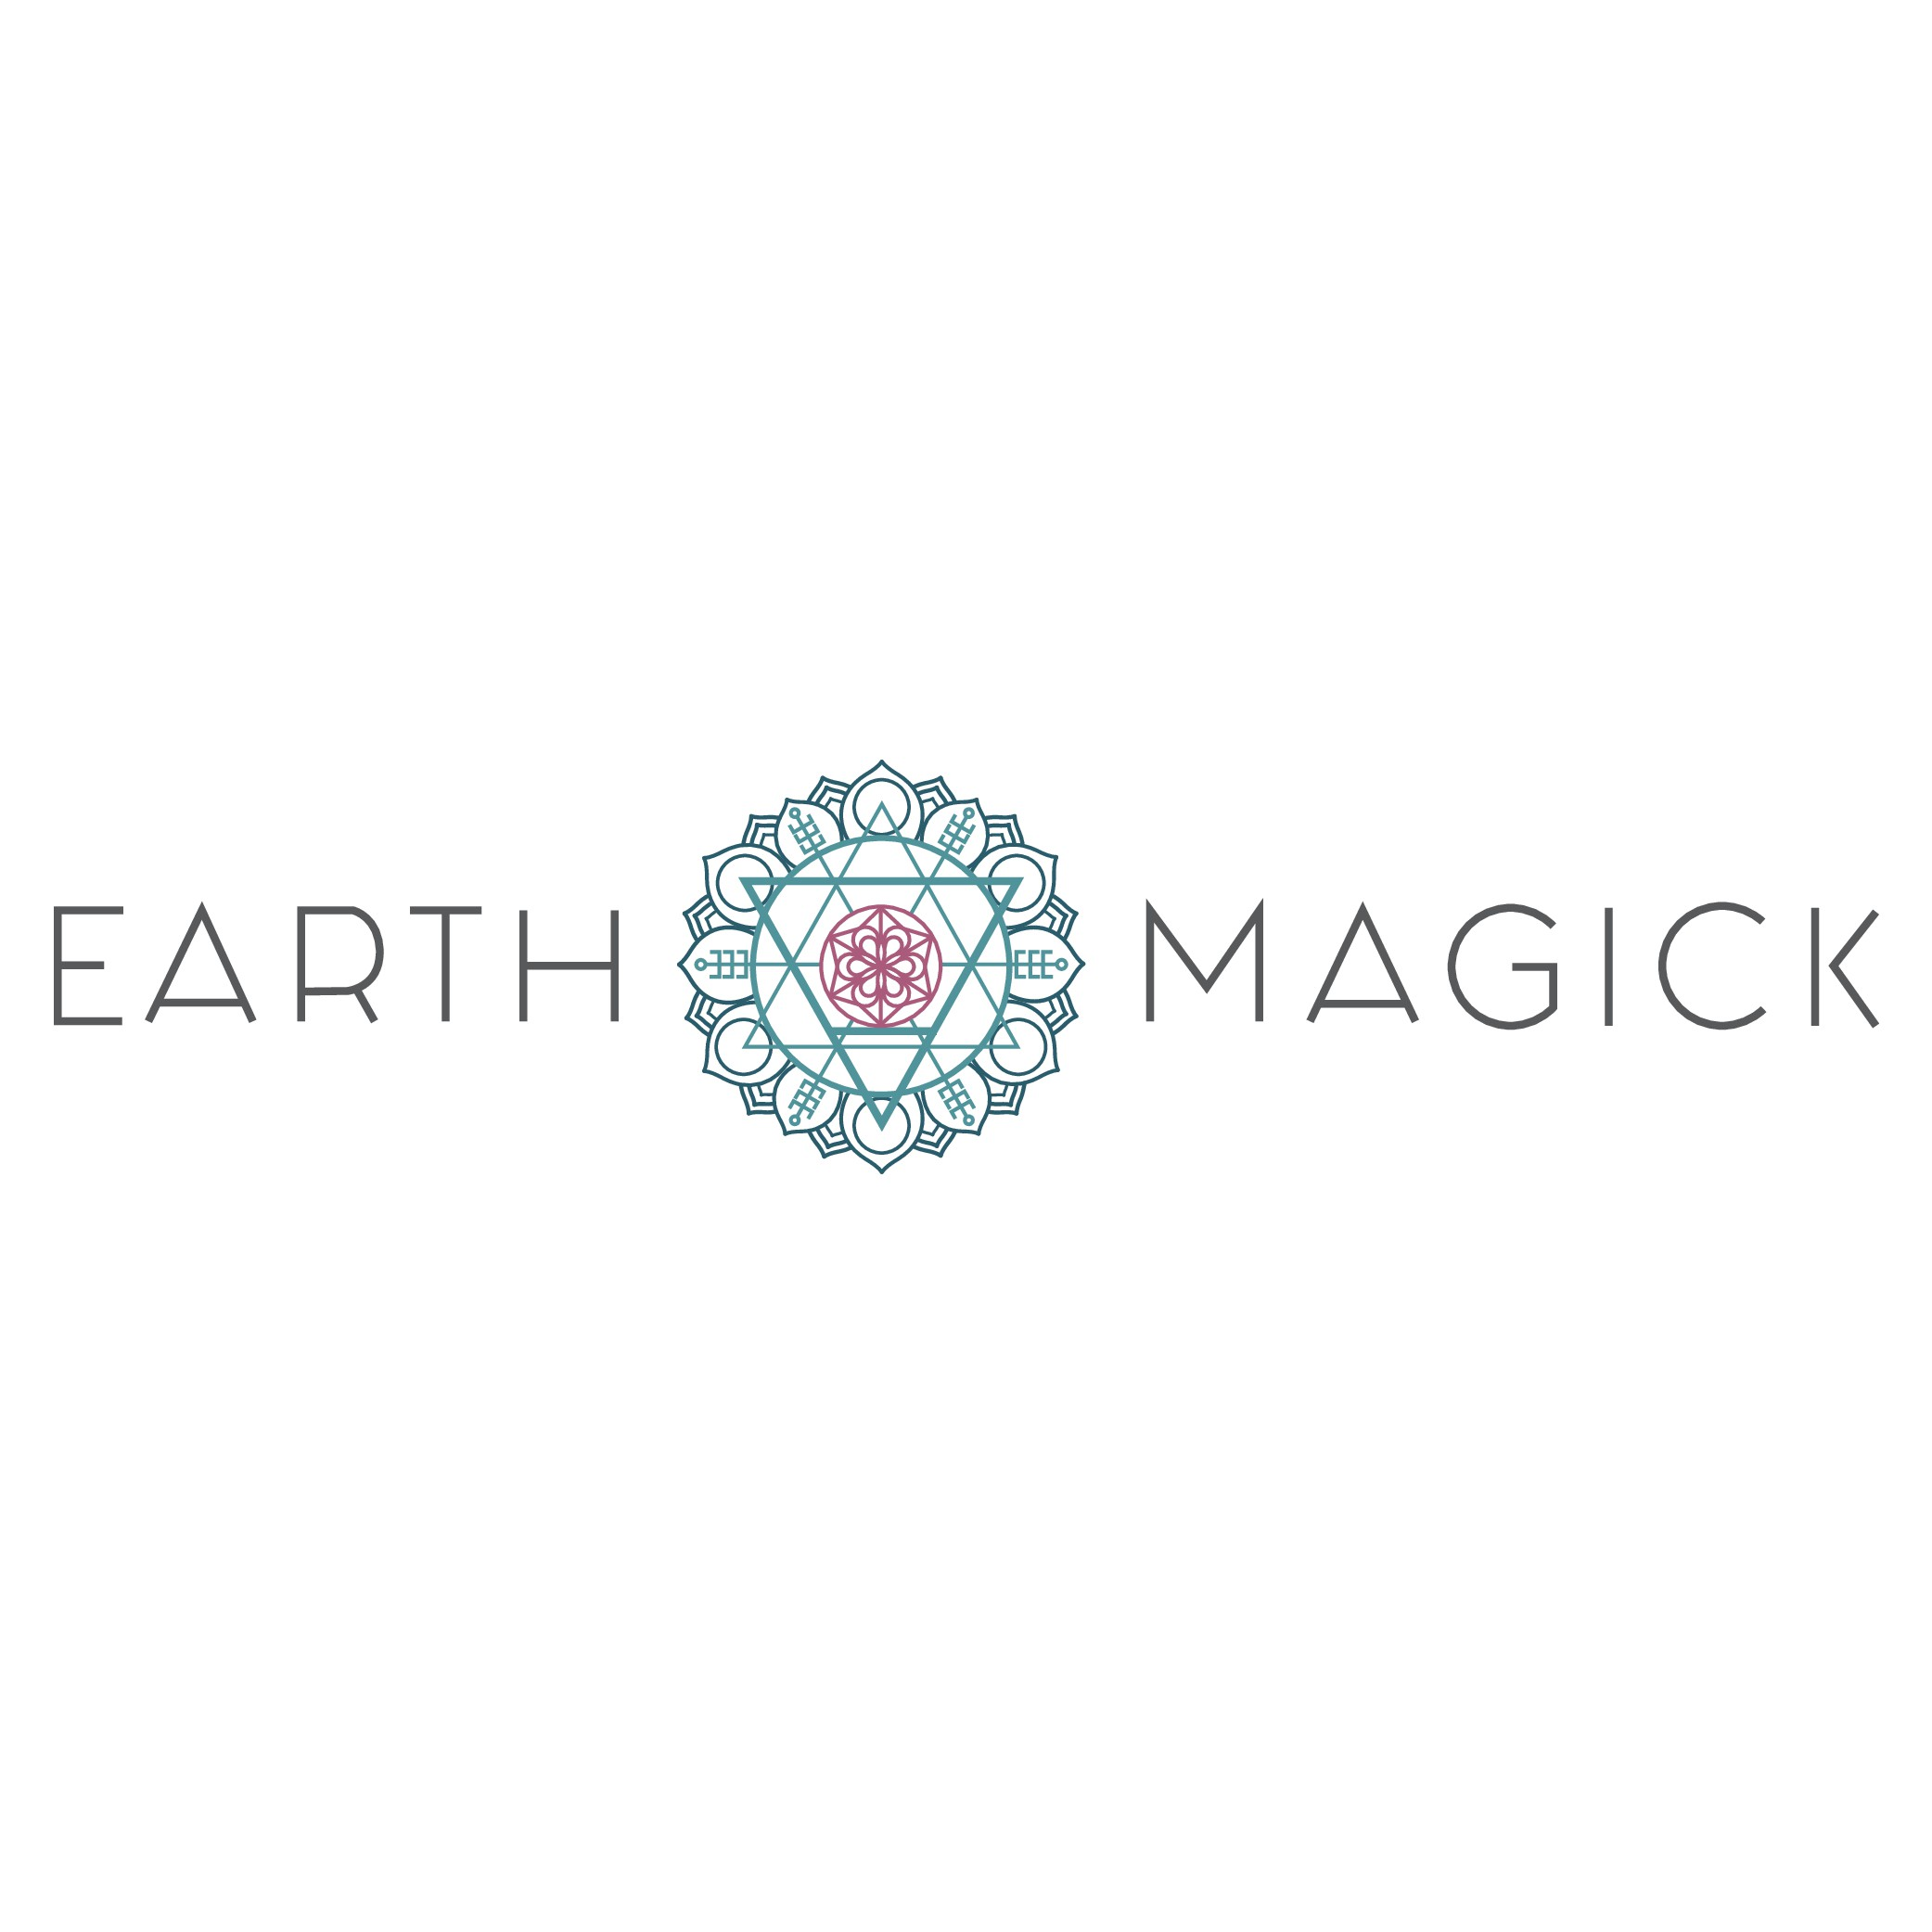 Earth Magick - New Shop in Asheville NC